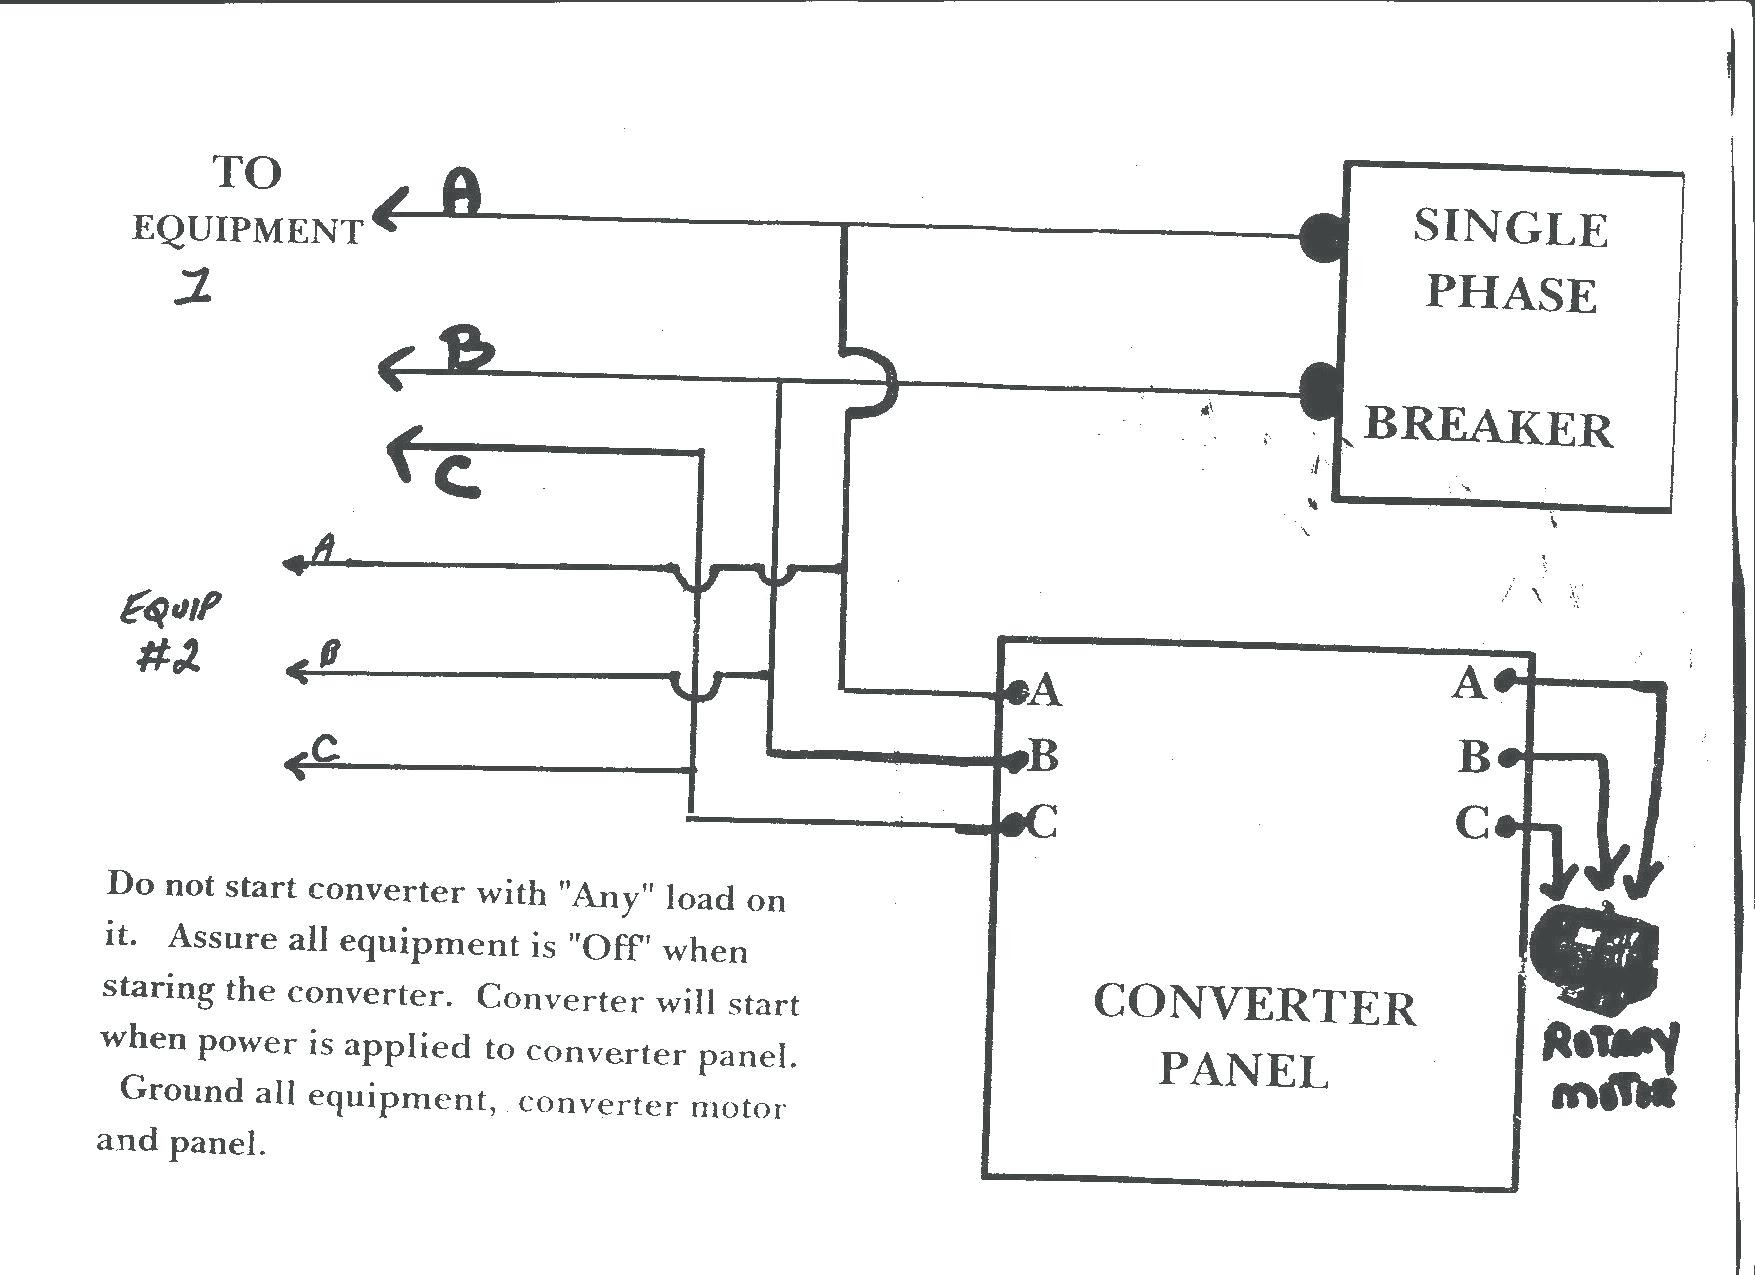 Three Phase Converter Wiring Diagram Voltage Multiplier Wind Power Turbine Of Related Post